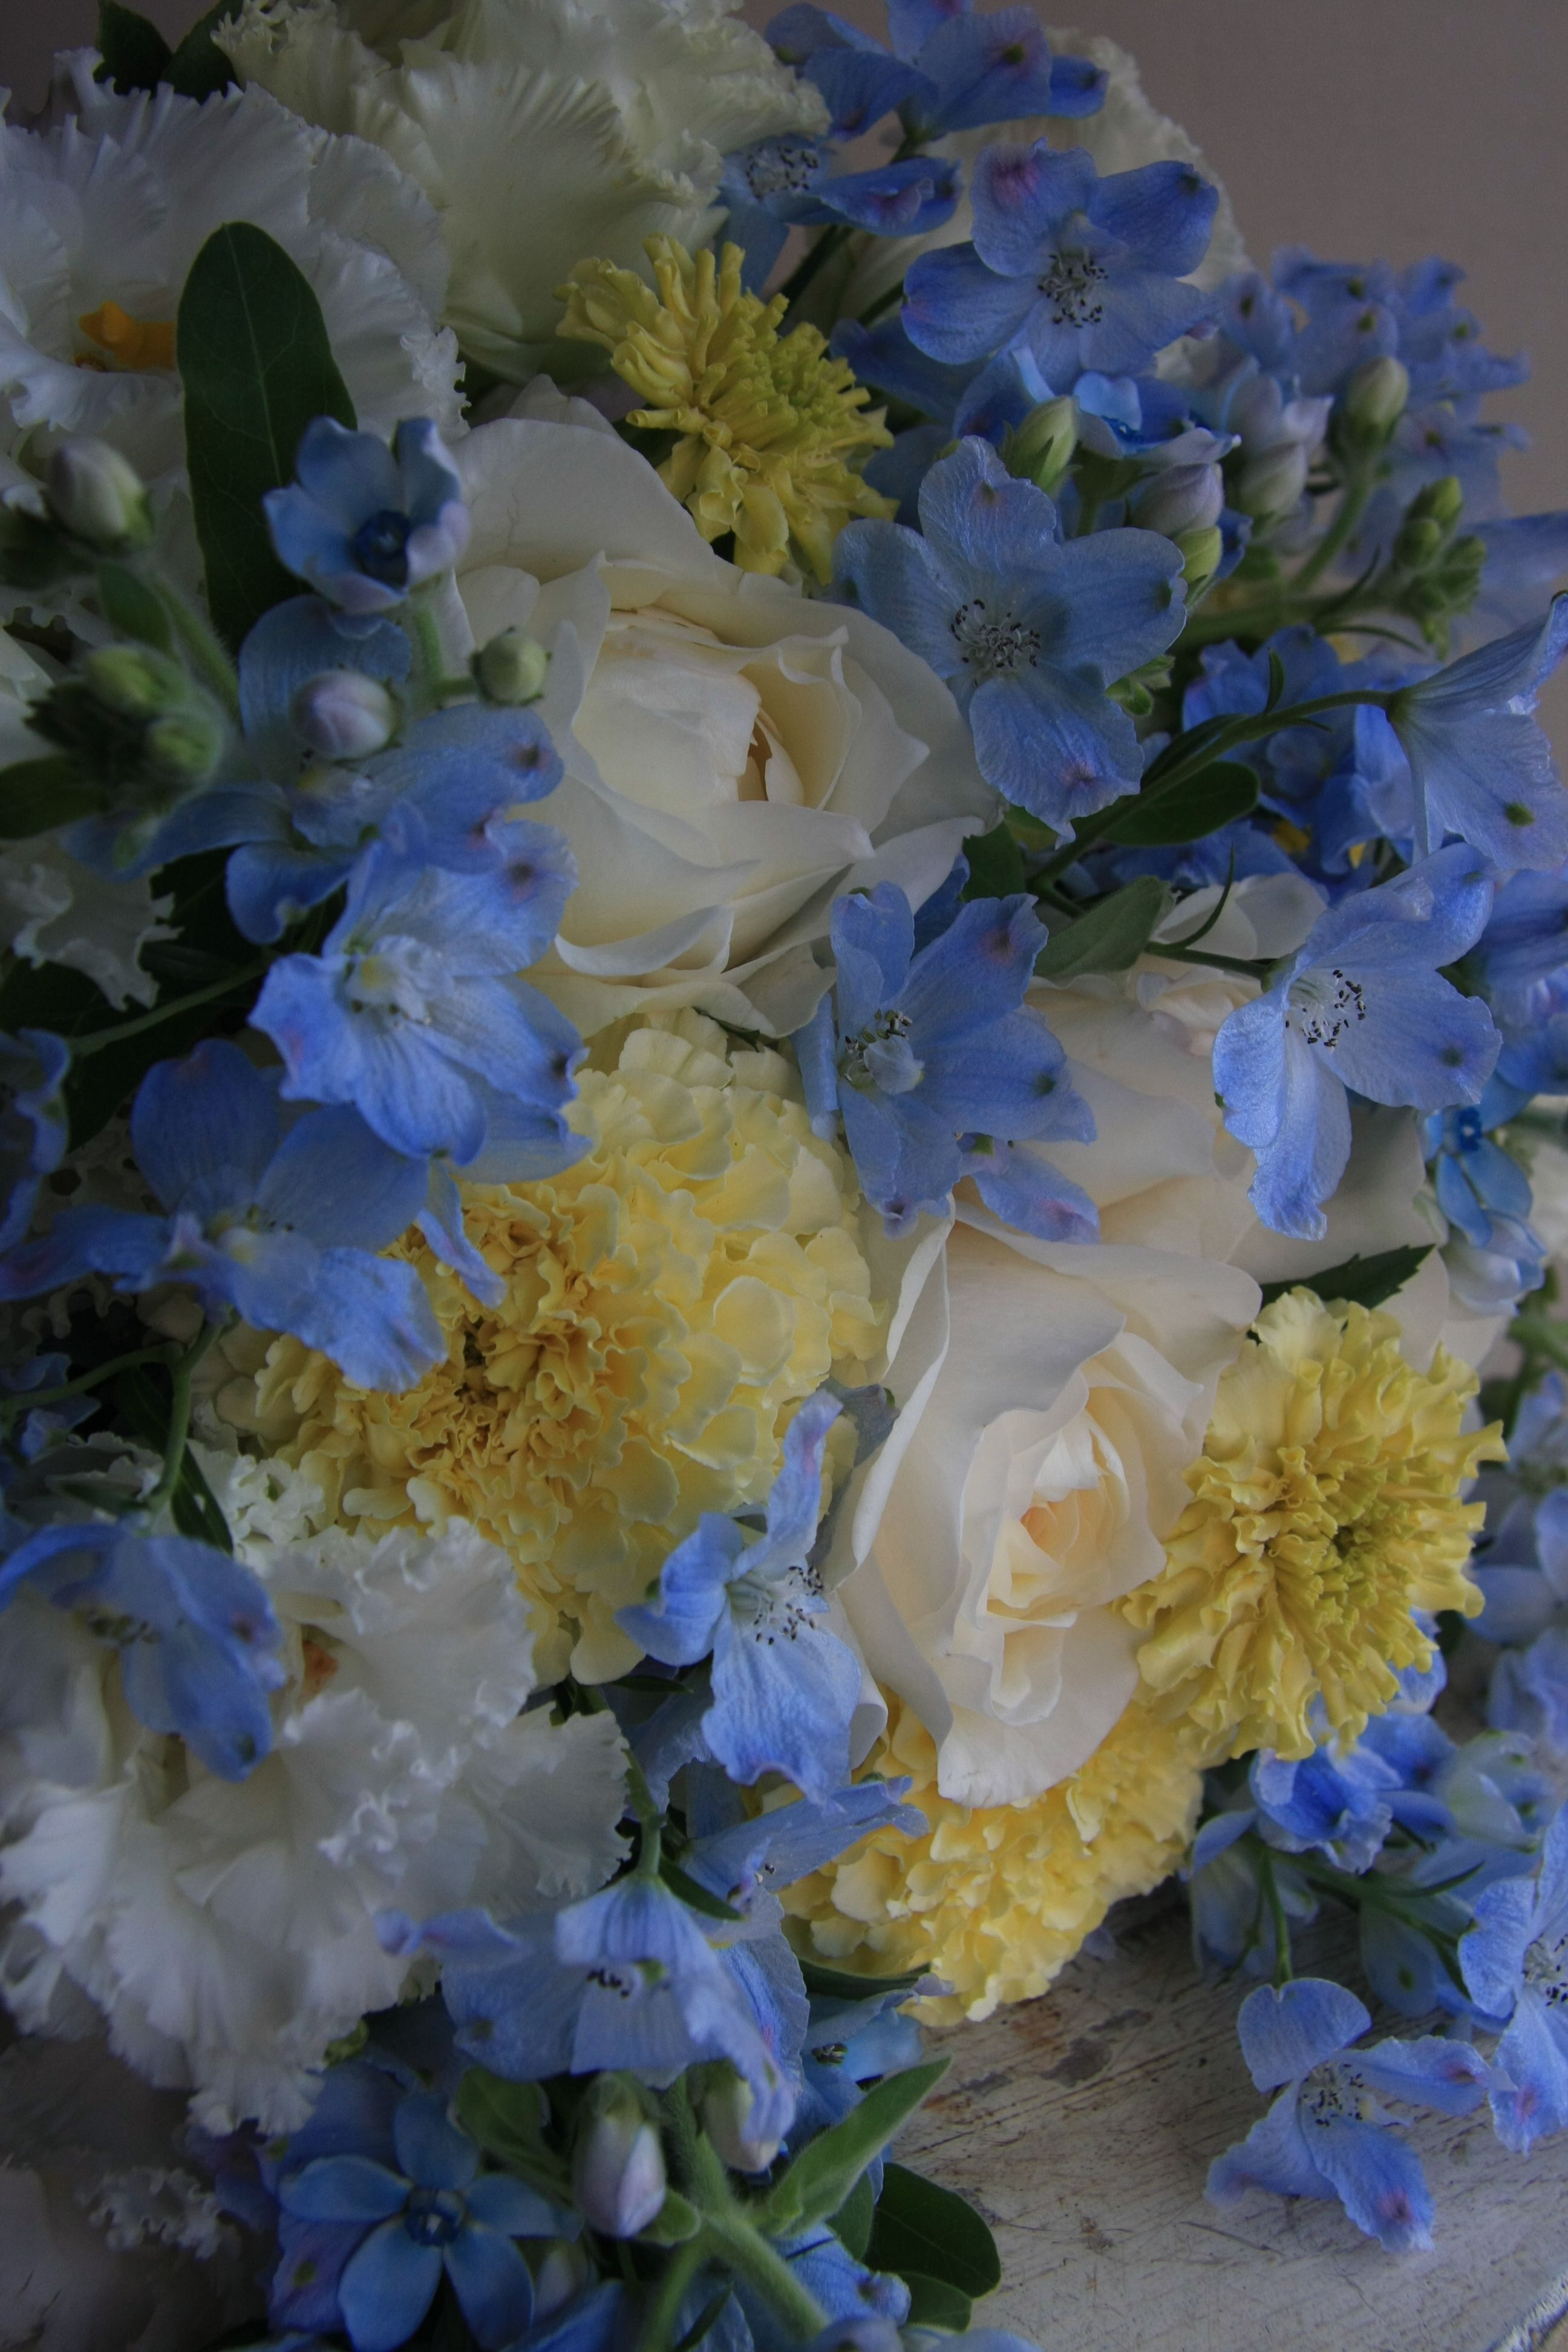 I Love Yellow And Blue Together Flowers Pinterest Flowers